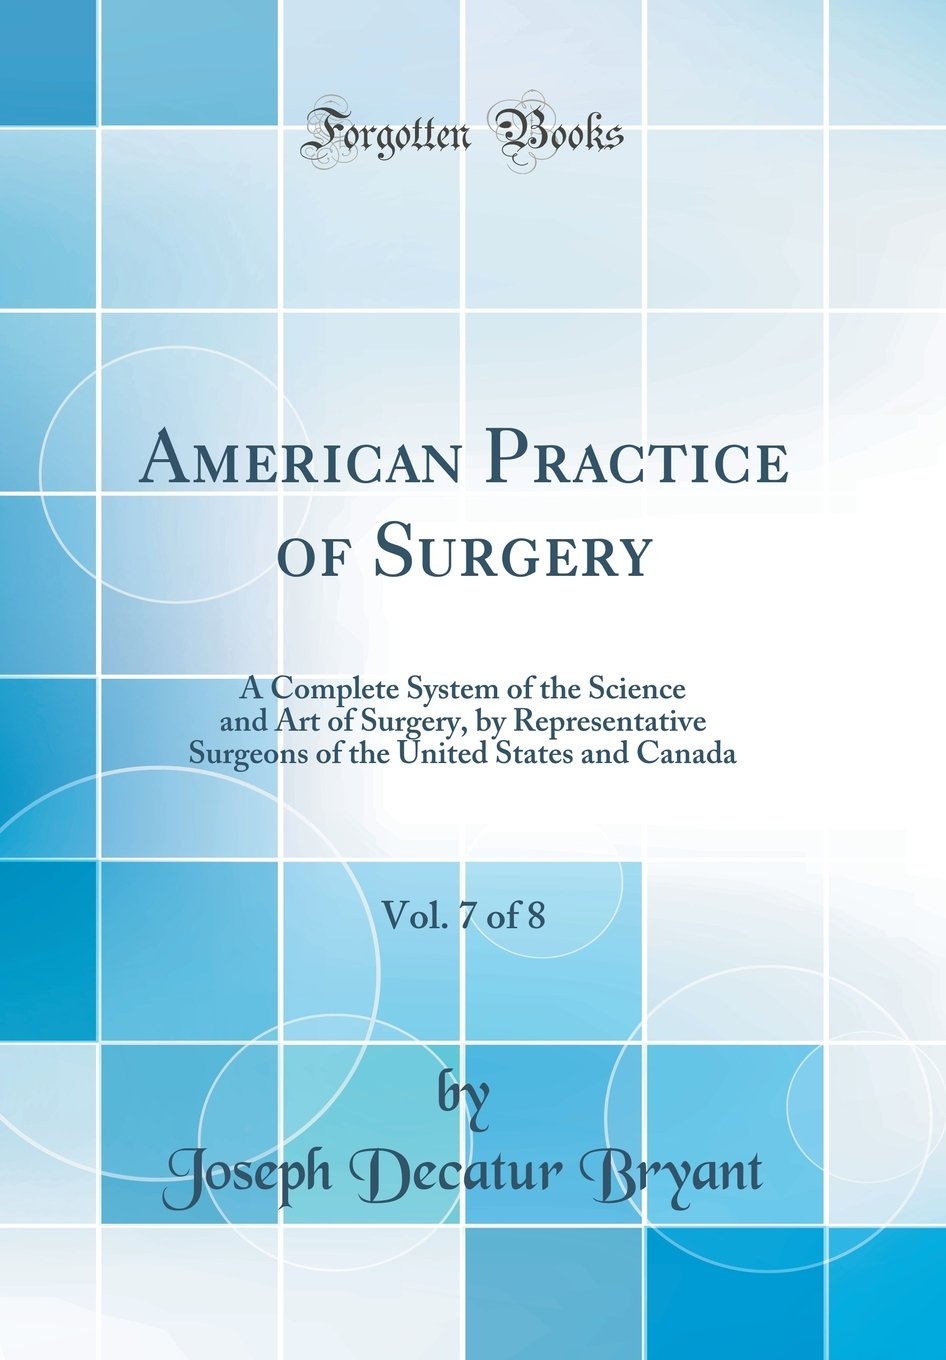 Read Online American Practice of Surgery, Vol. 7 of 8: A Complete System of the Science and Art of Surgery, by Representative Surgeons of the United States and Canada (Classic Reprint) PDF